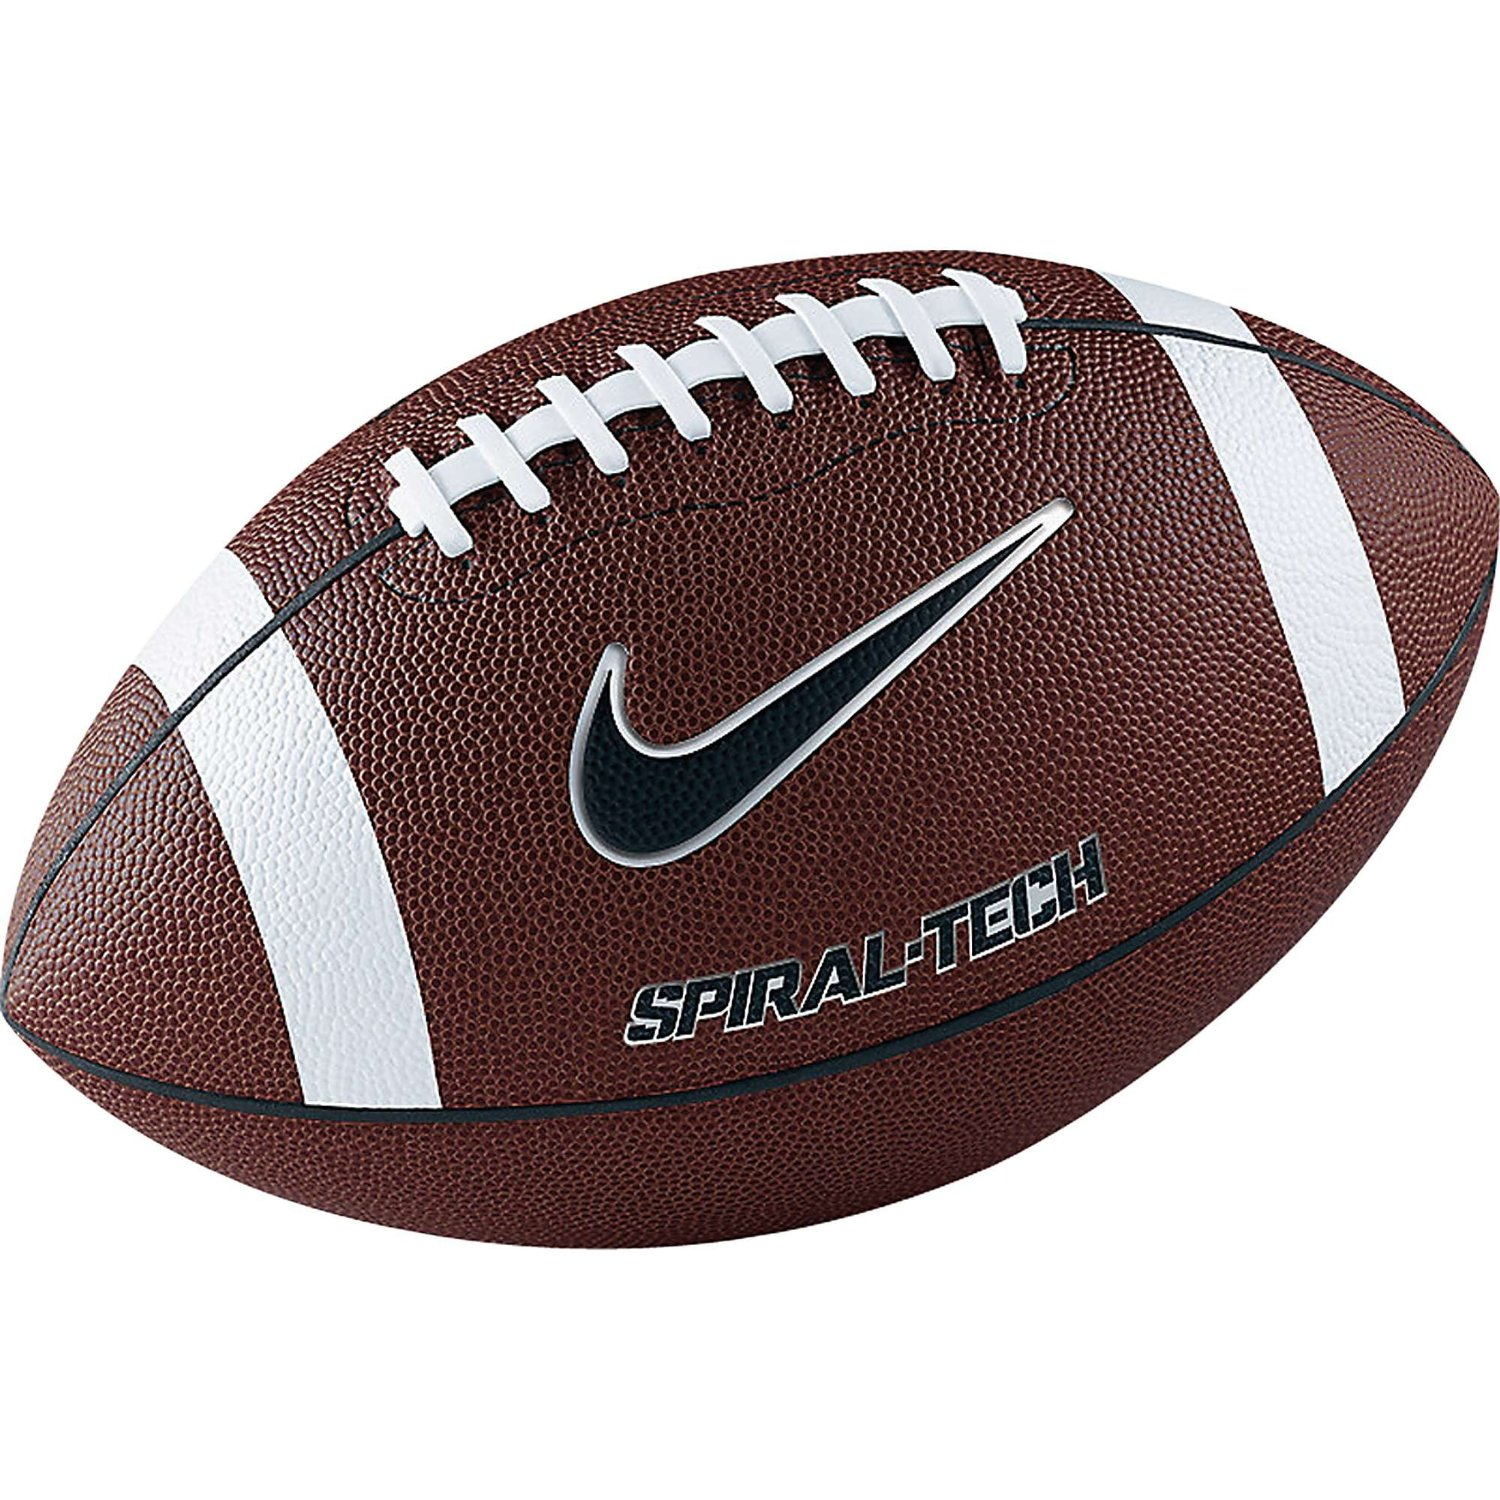 Nike Spiral-Tech 3.0 Official Football